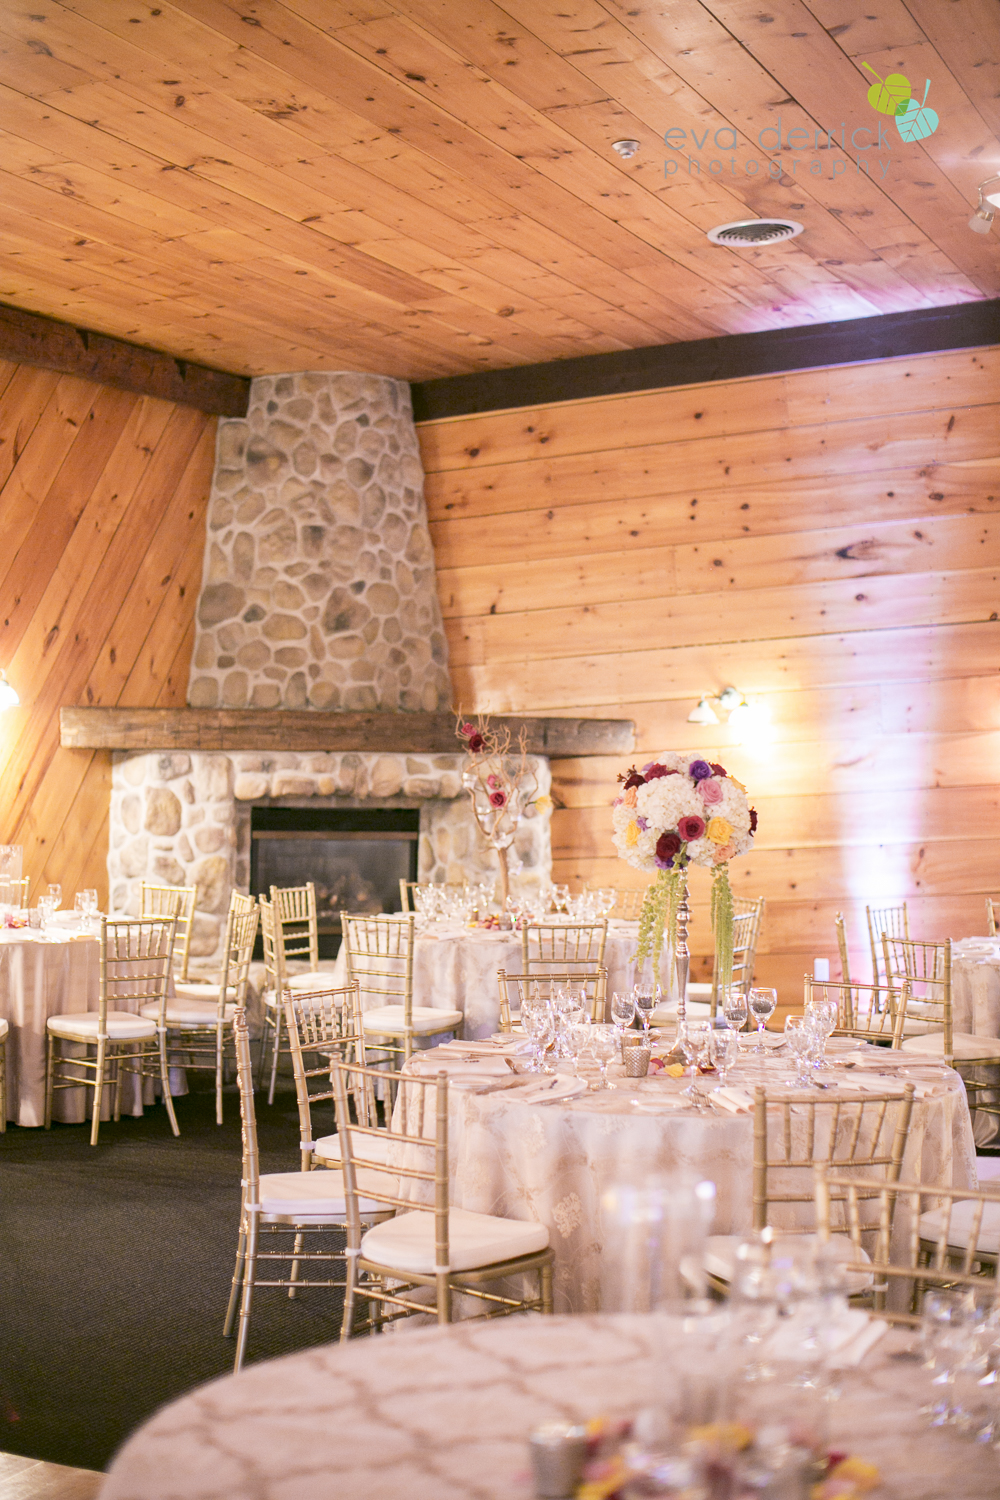 niagara-wedding-photographer-niagara-region-wedding-photographer-hernder-estate-winery-wedding-venue-barn-barn-weddings-eva-derrick-photography-florals-floral-bouquet-bride-bridemaids-church-gala-decor-liquid-entertainment-sinful-desserts-kyle-chipchura-nhl-wedding-hockey-player-oohlala-oh-la-la-designs-niagara-florist-photography-photographs-couples-couple-photo-edp_w_nancy_kyle-0497.jpg